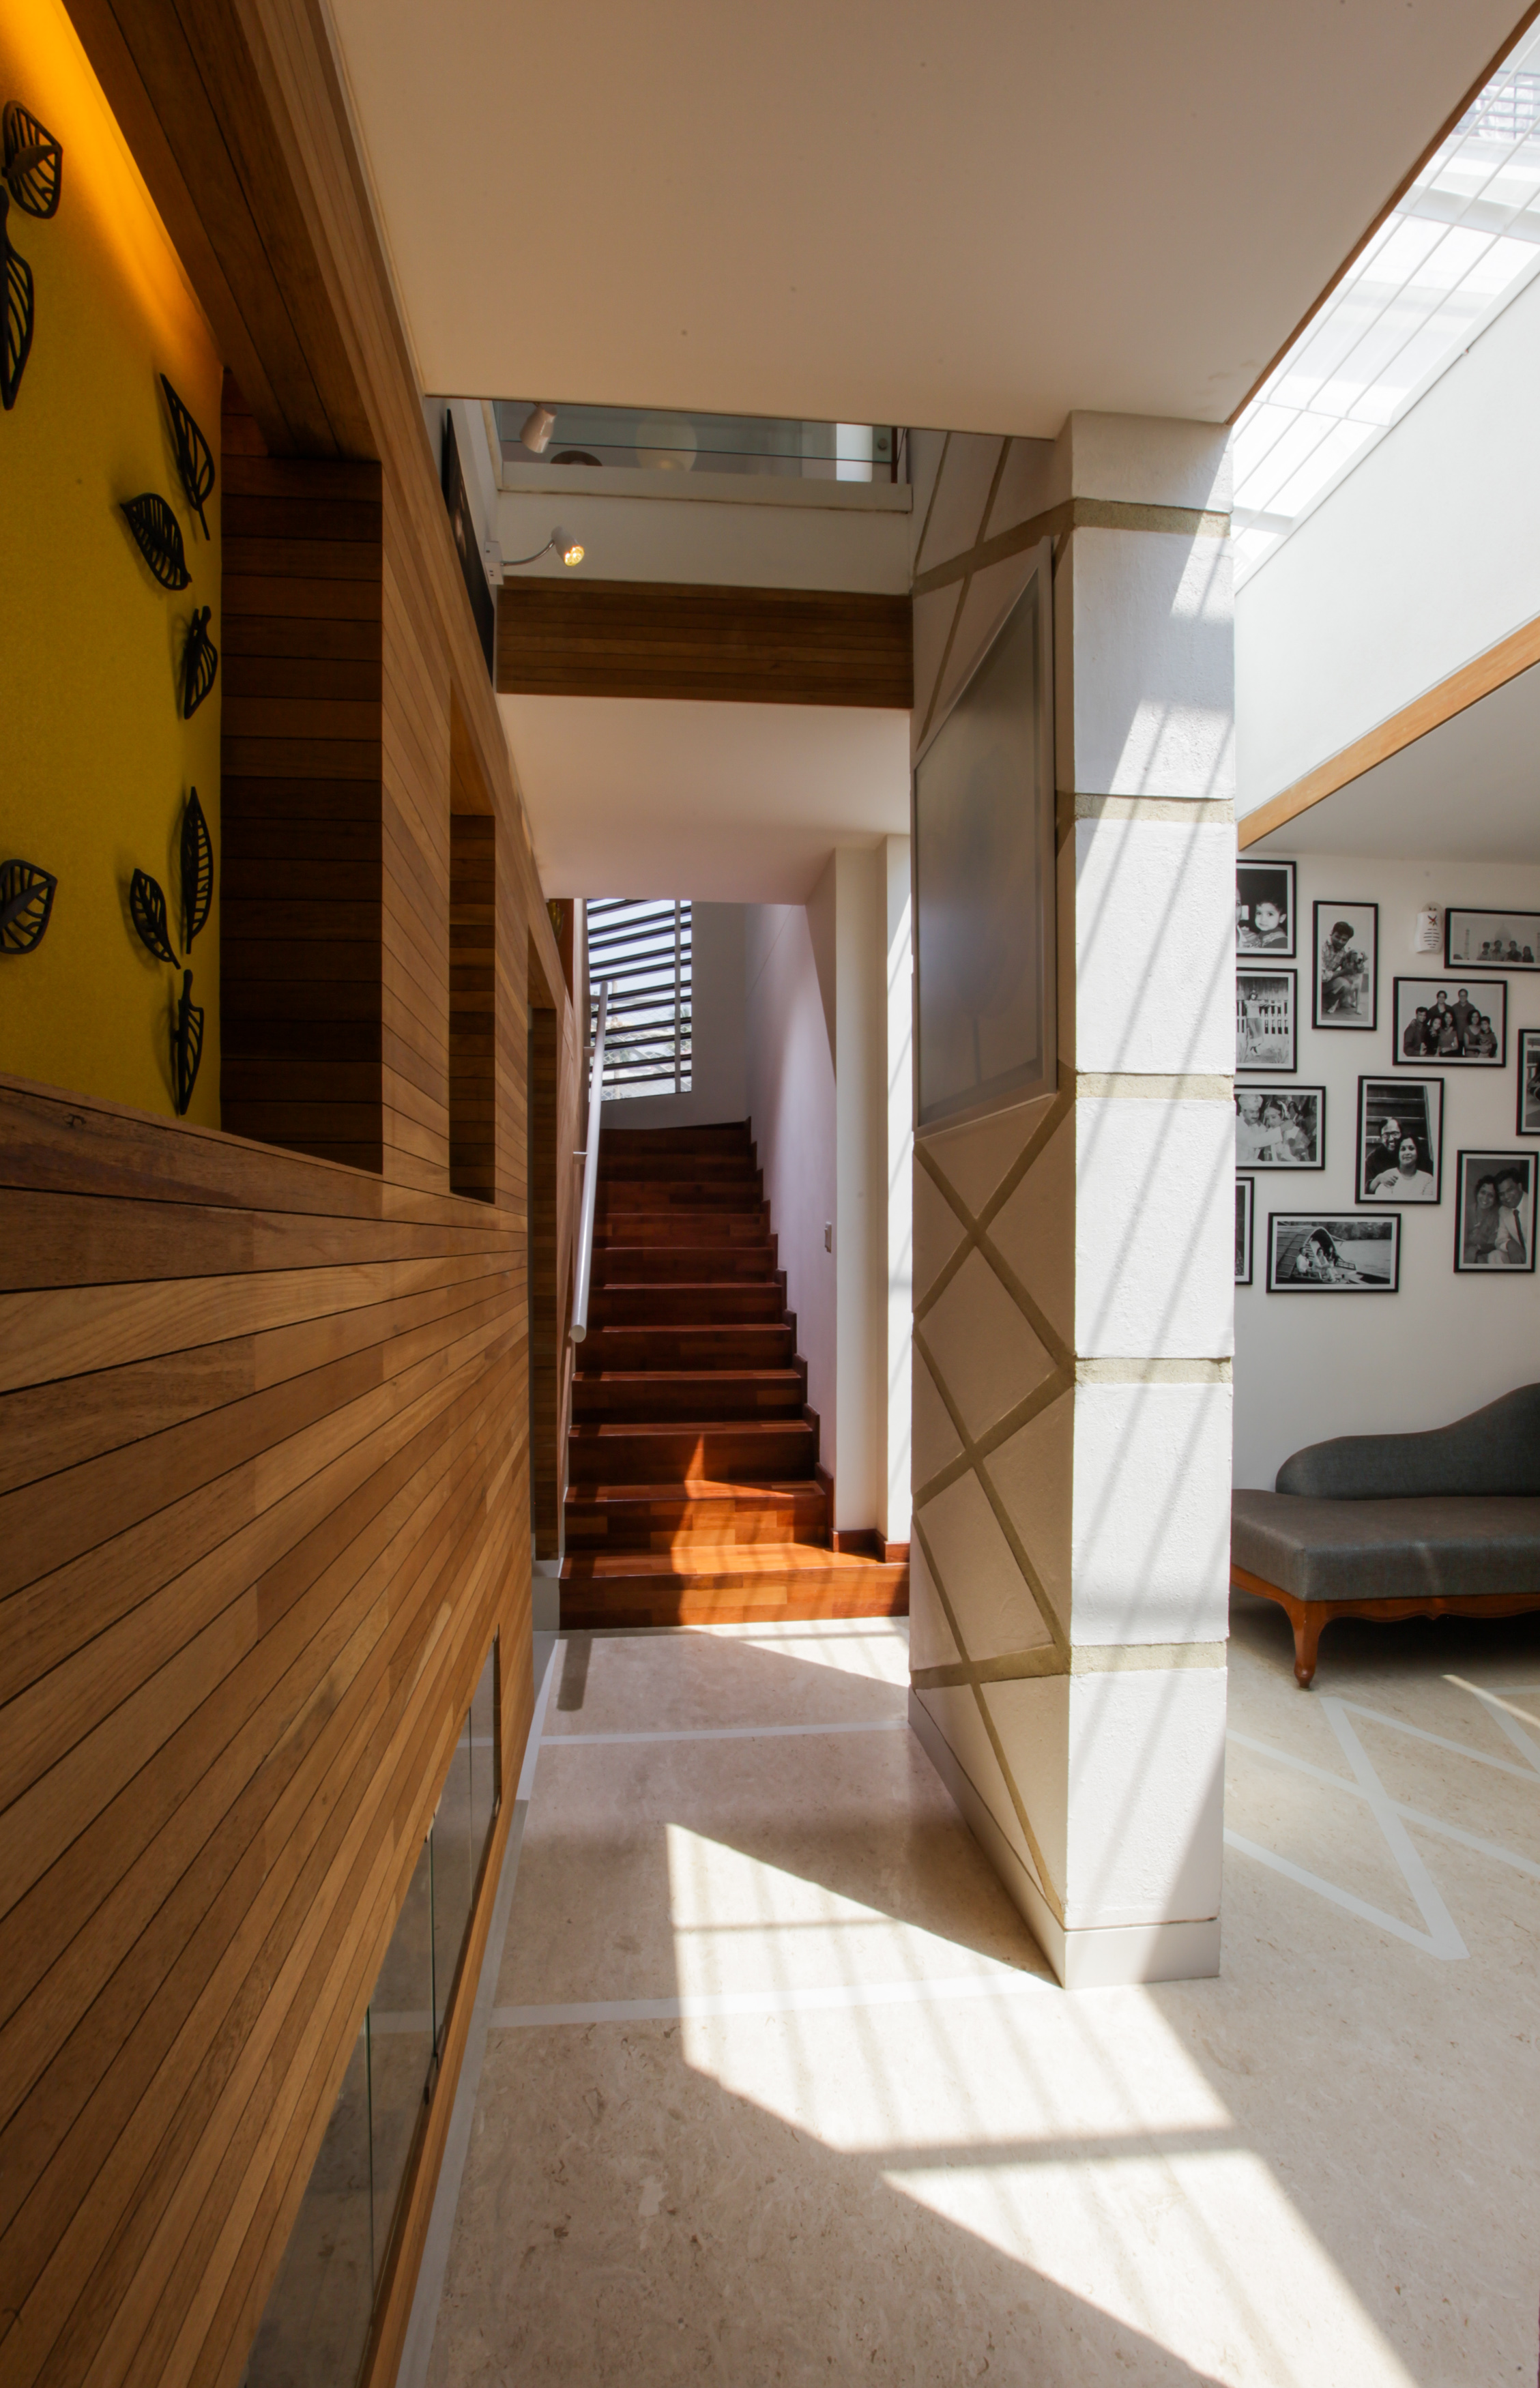 The corridor leading to the staircase